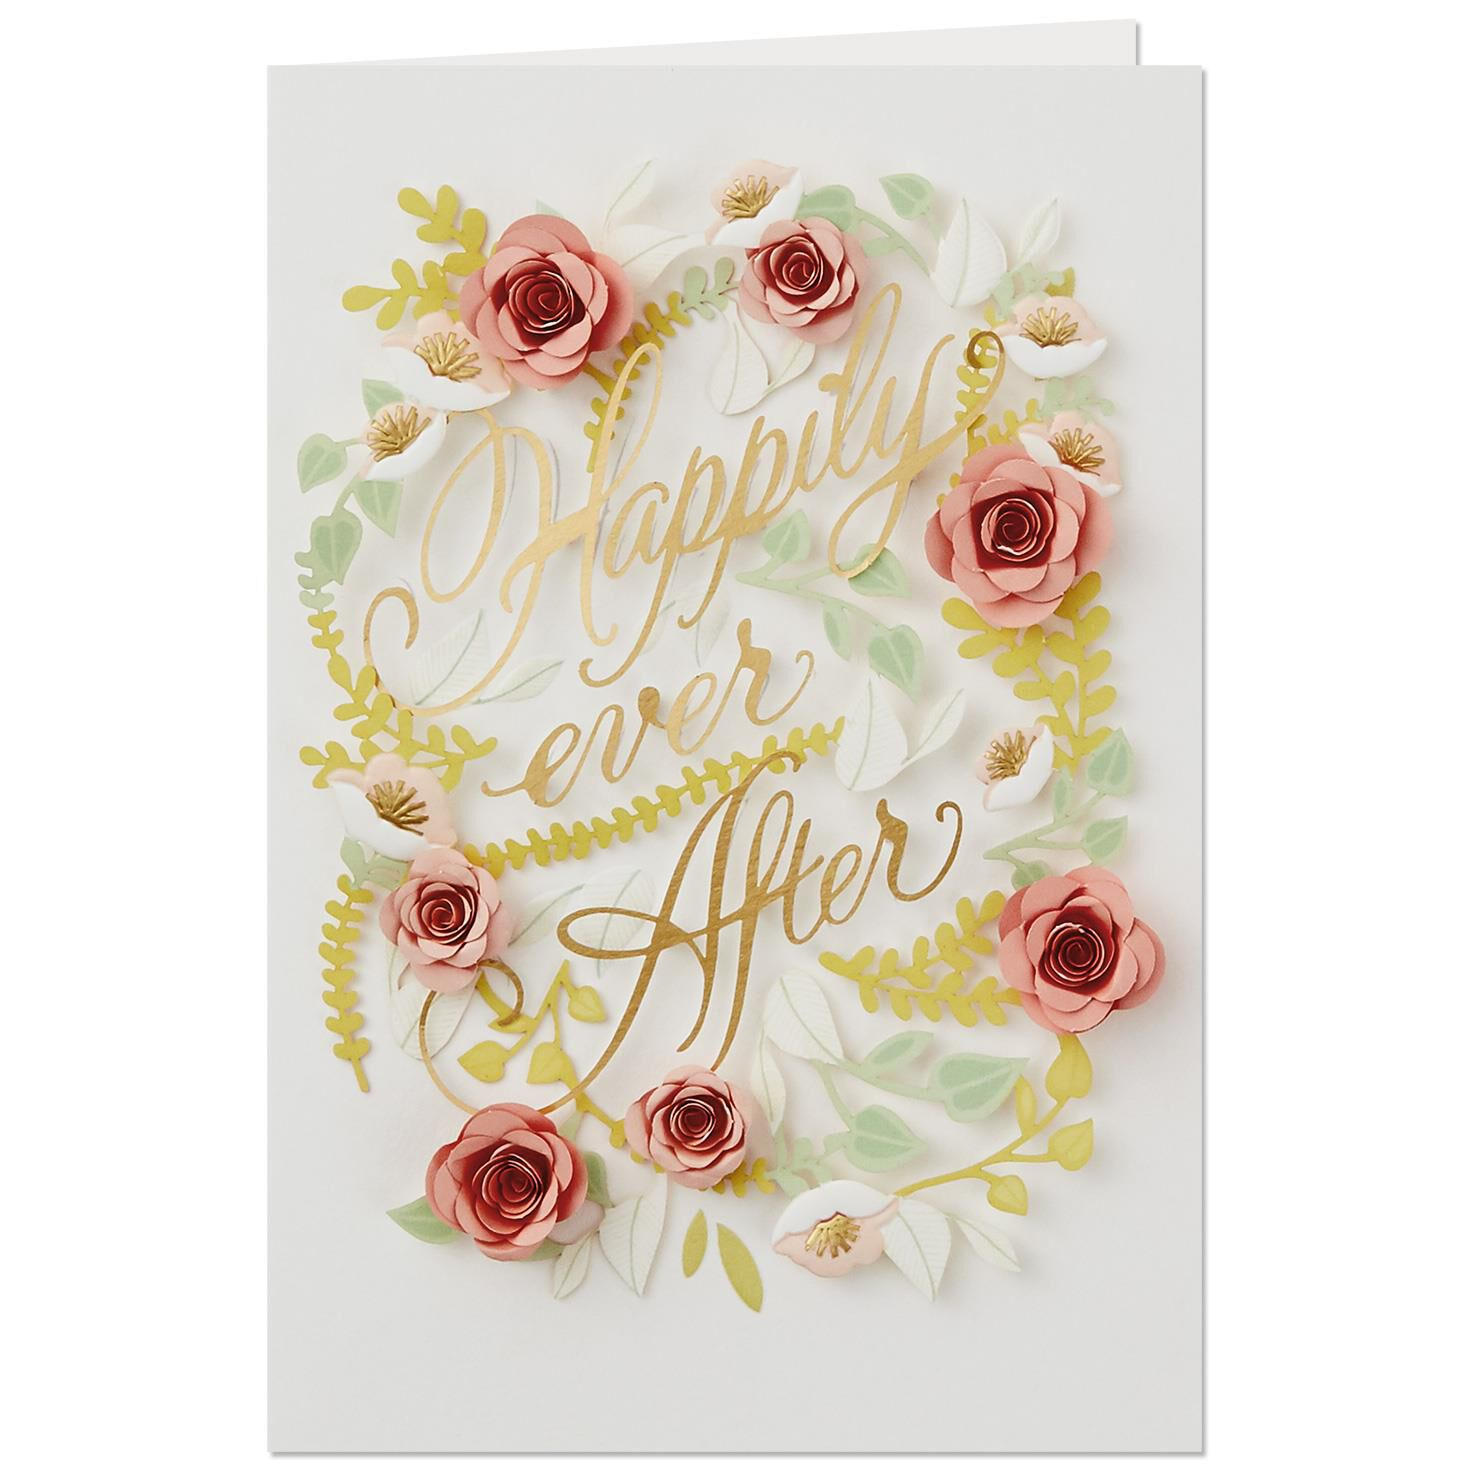 Happily Ever After Wedding Card Greeting Cards Hallmark